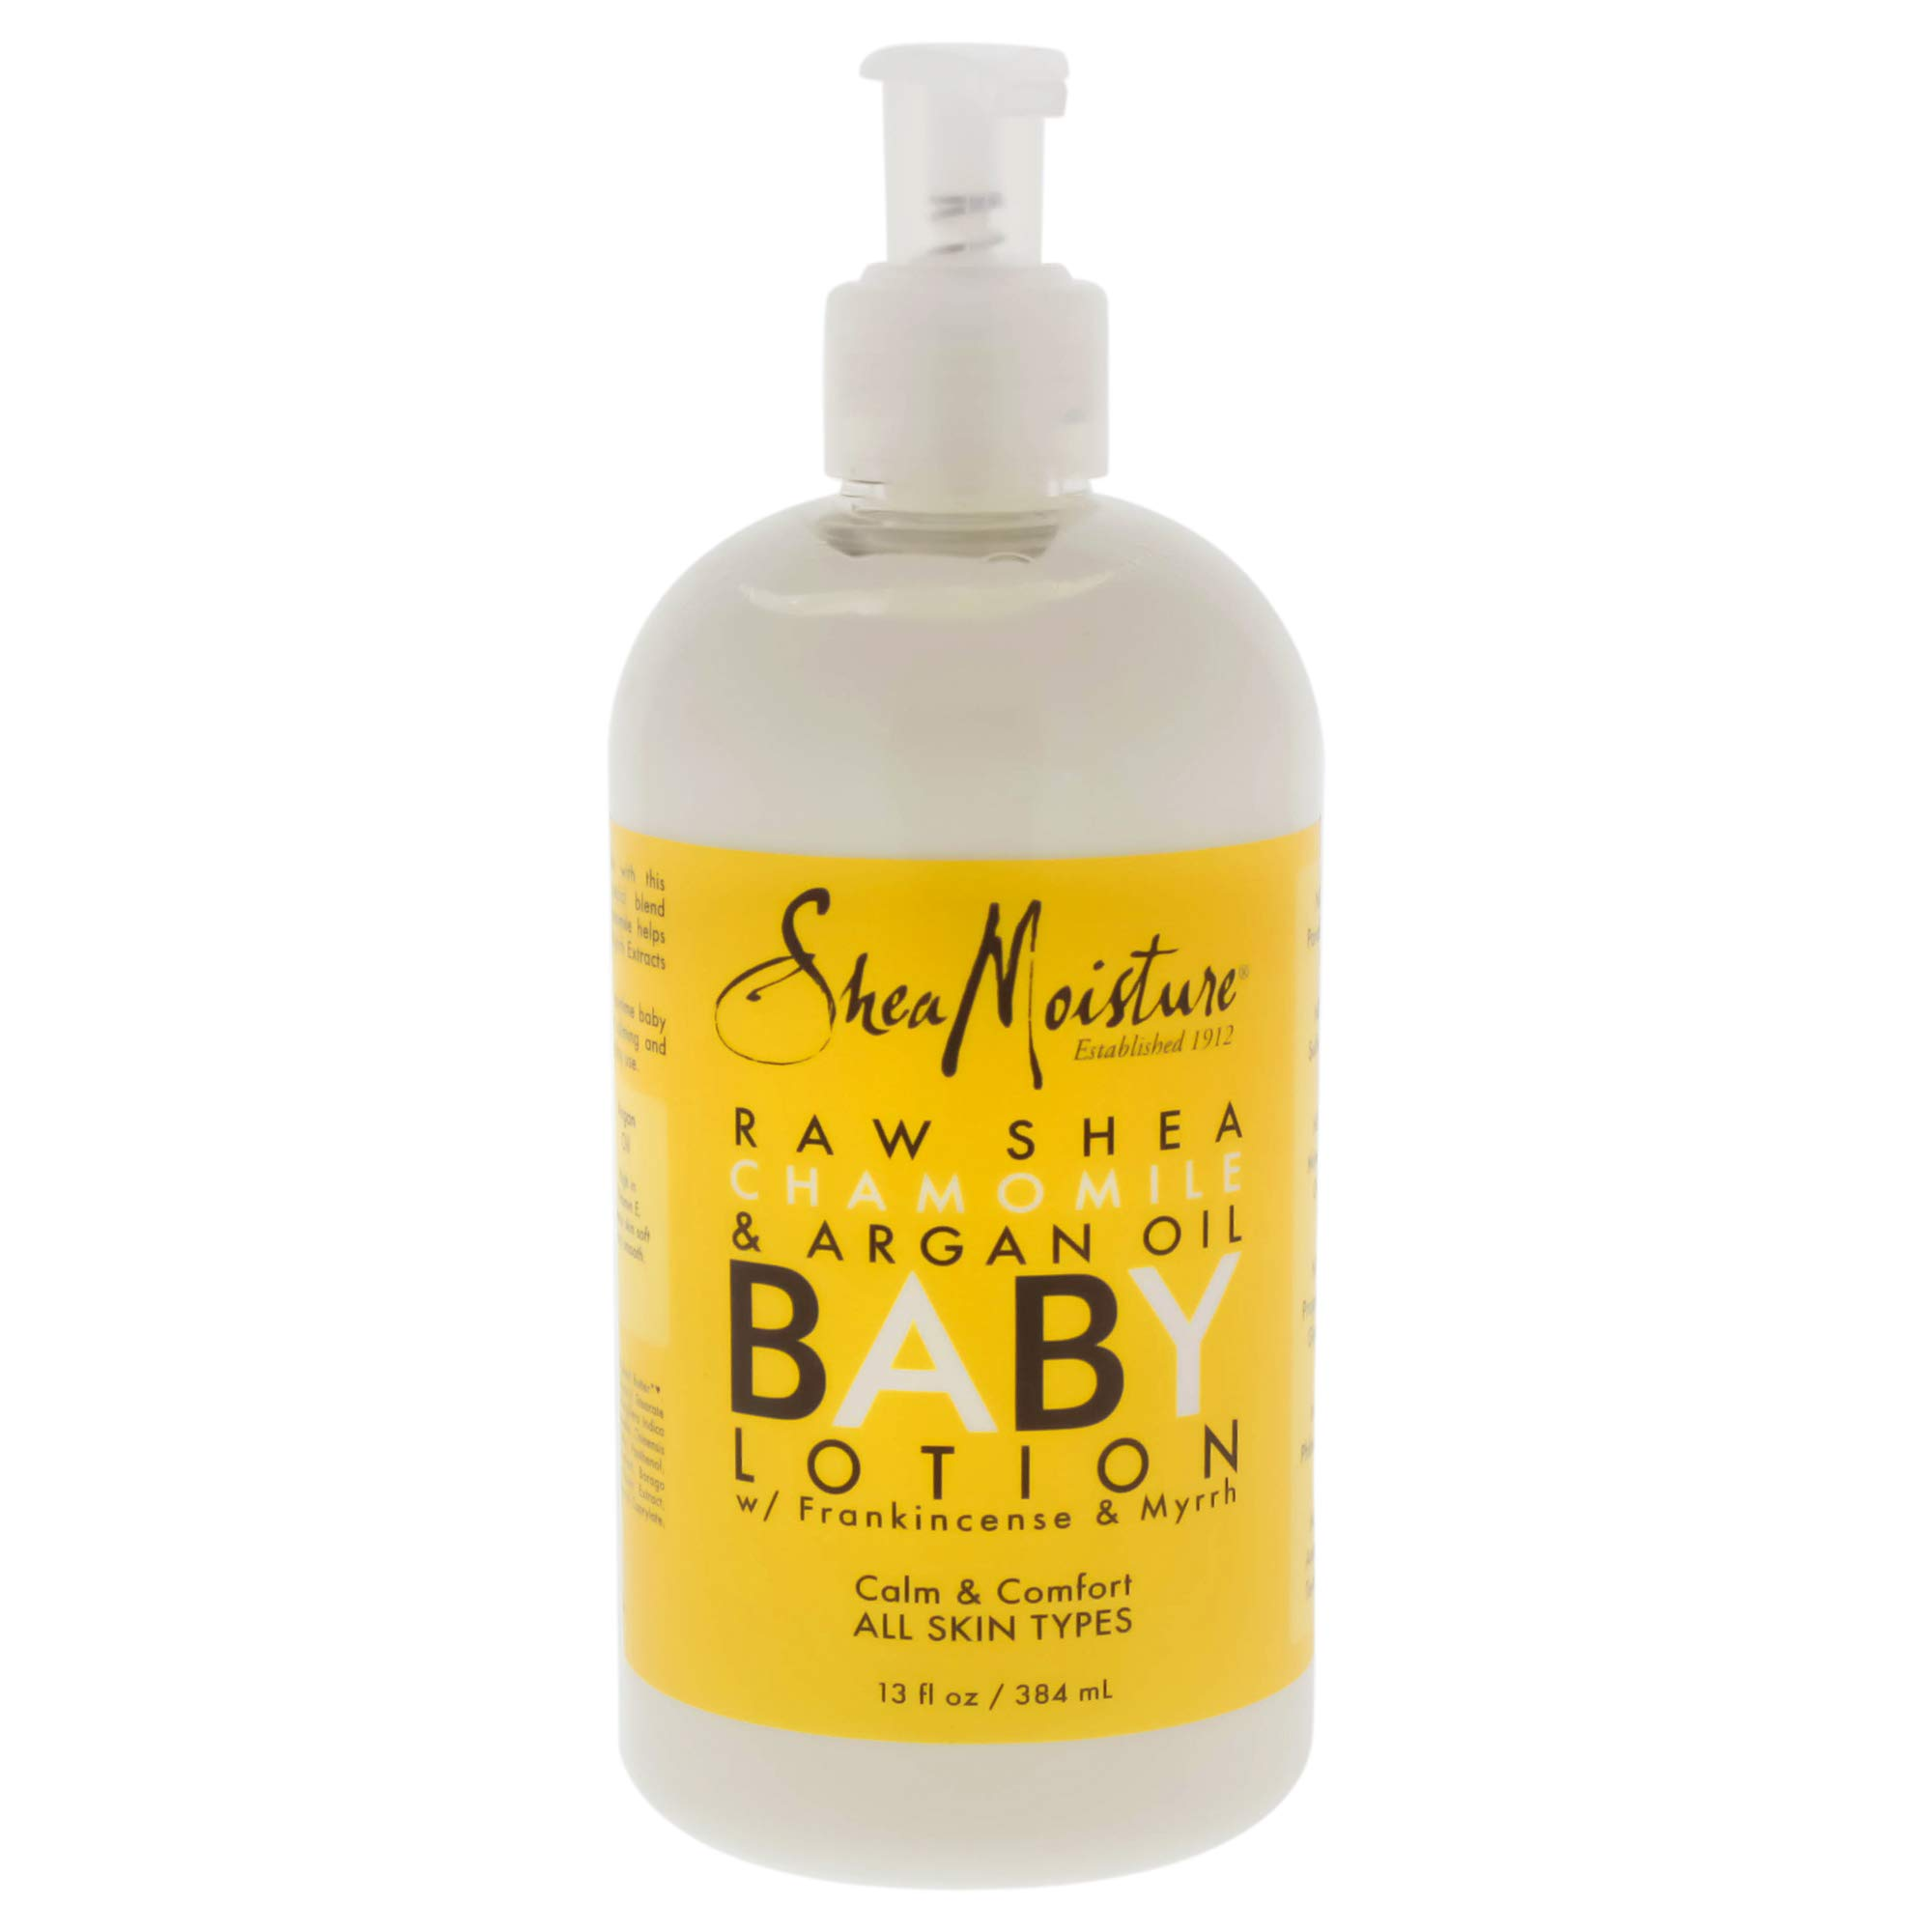 Raw Shea Chamomile & Argan Oil Baby Lotion by SheaMoisture #10